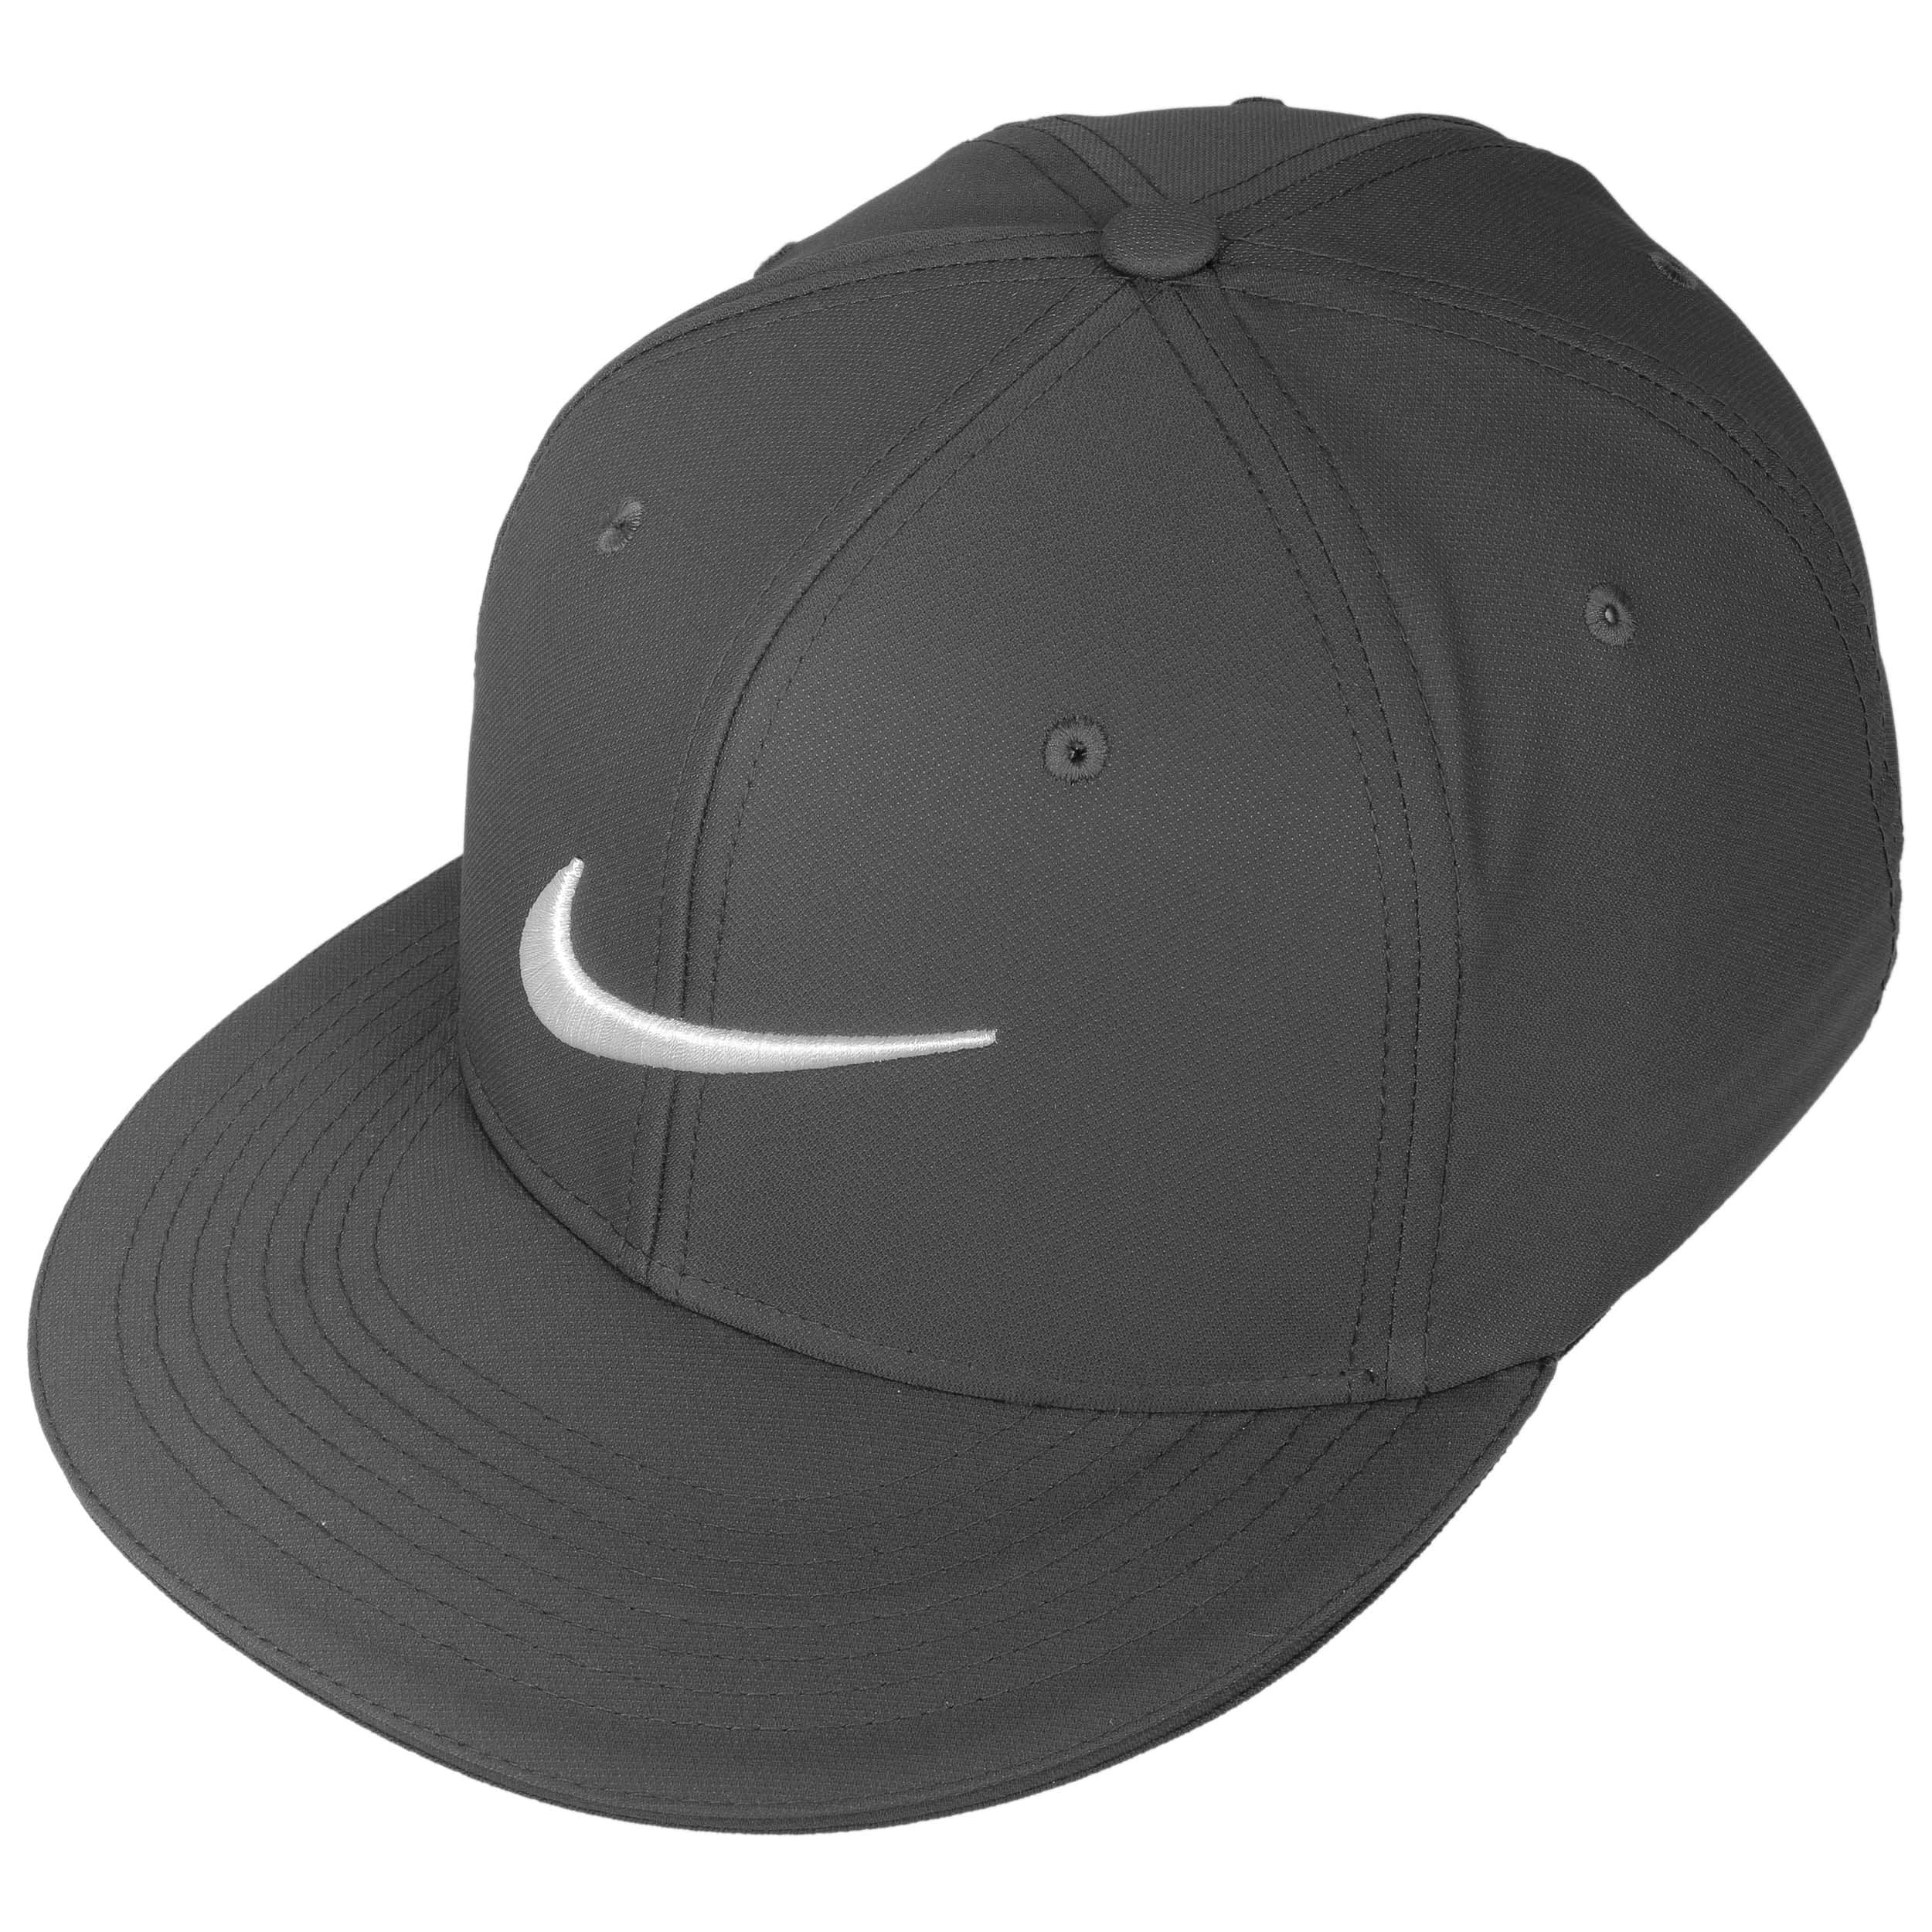 44385c73d8b1e True Statement Clima Uni Cap by Nike - dark grey 1 ...